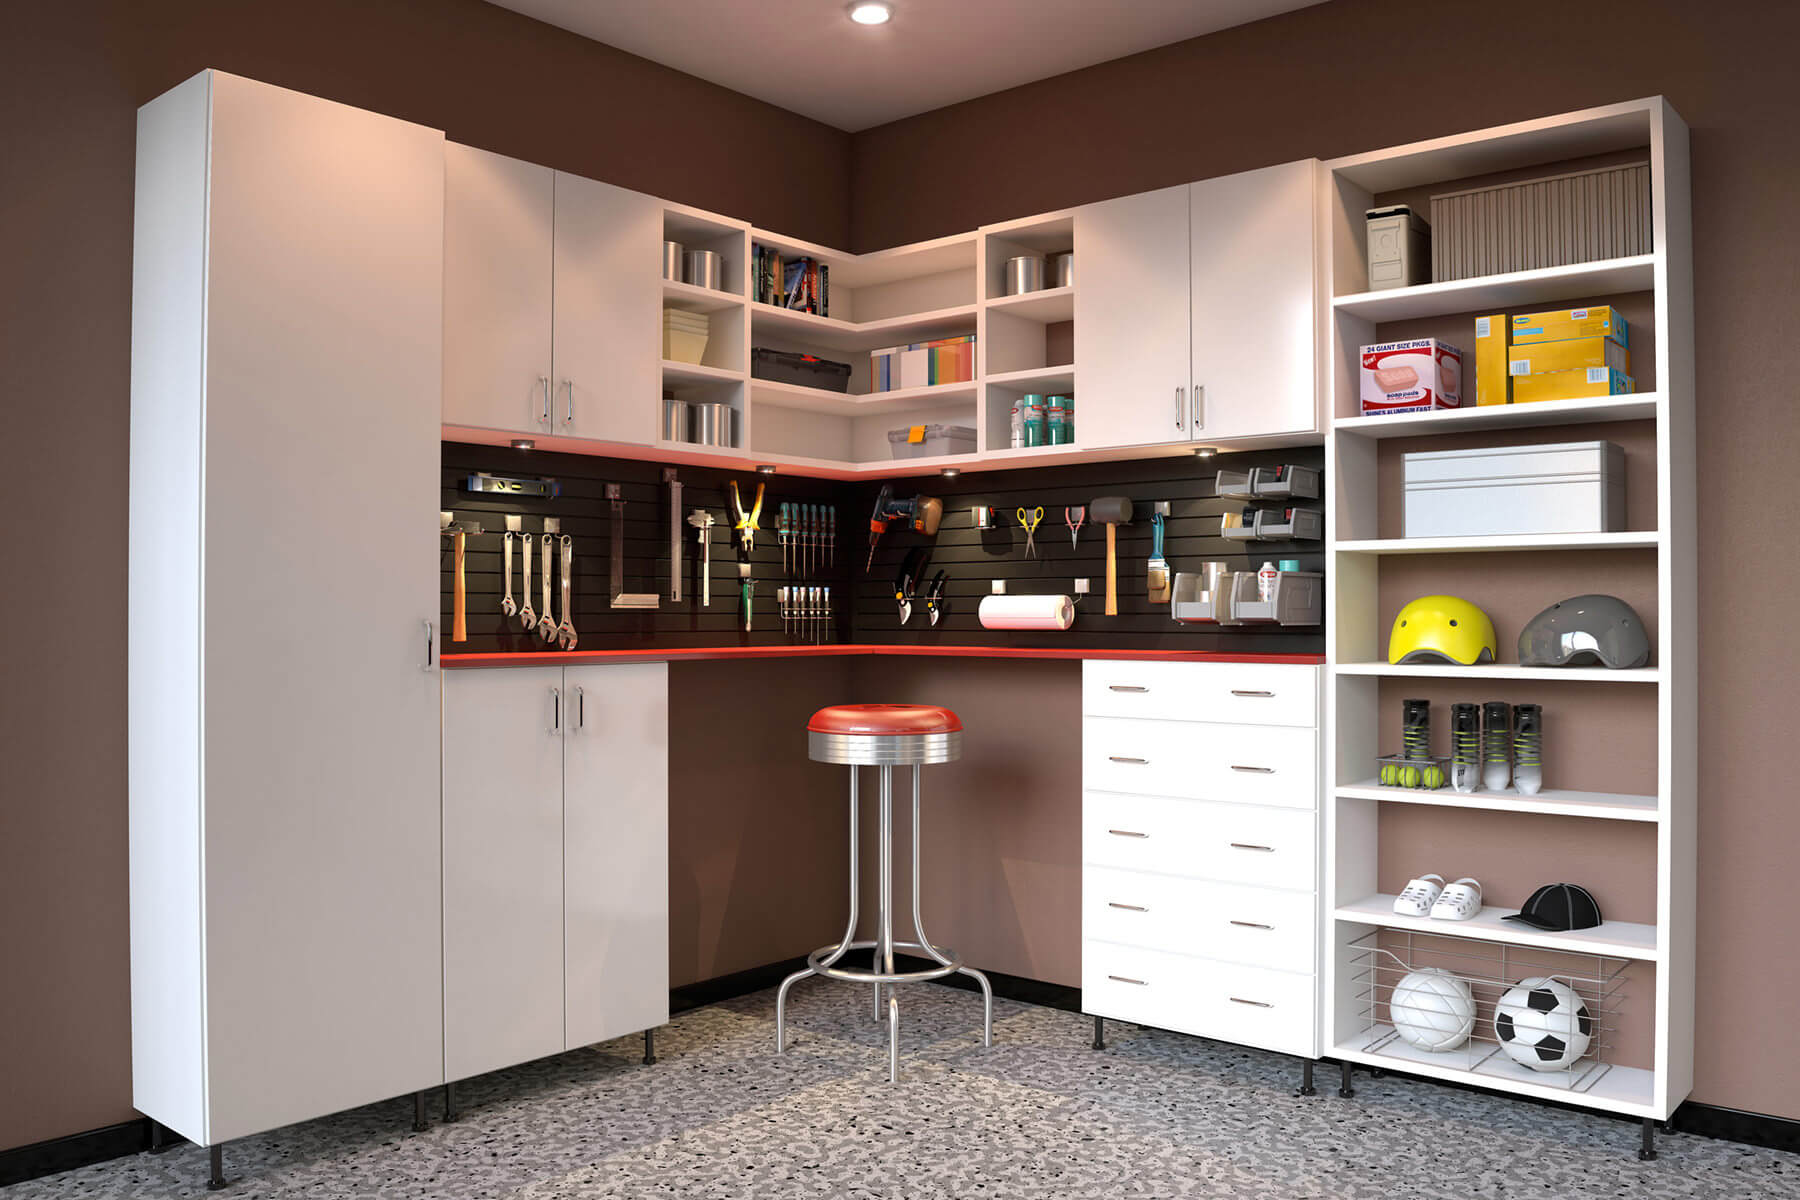 Gracious Storage Space Is Maximized Through Use Basic Tall Melaminecabinets Storage Cabinets Wall A Combination Storage Ideas Man Wall furniture Wall Of Storage